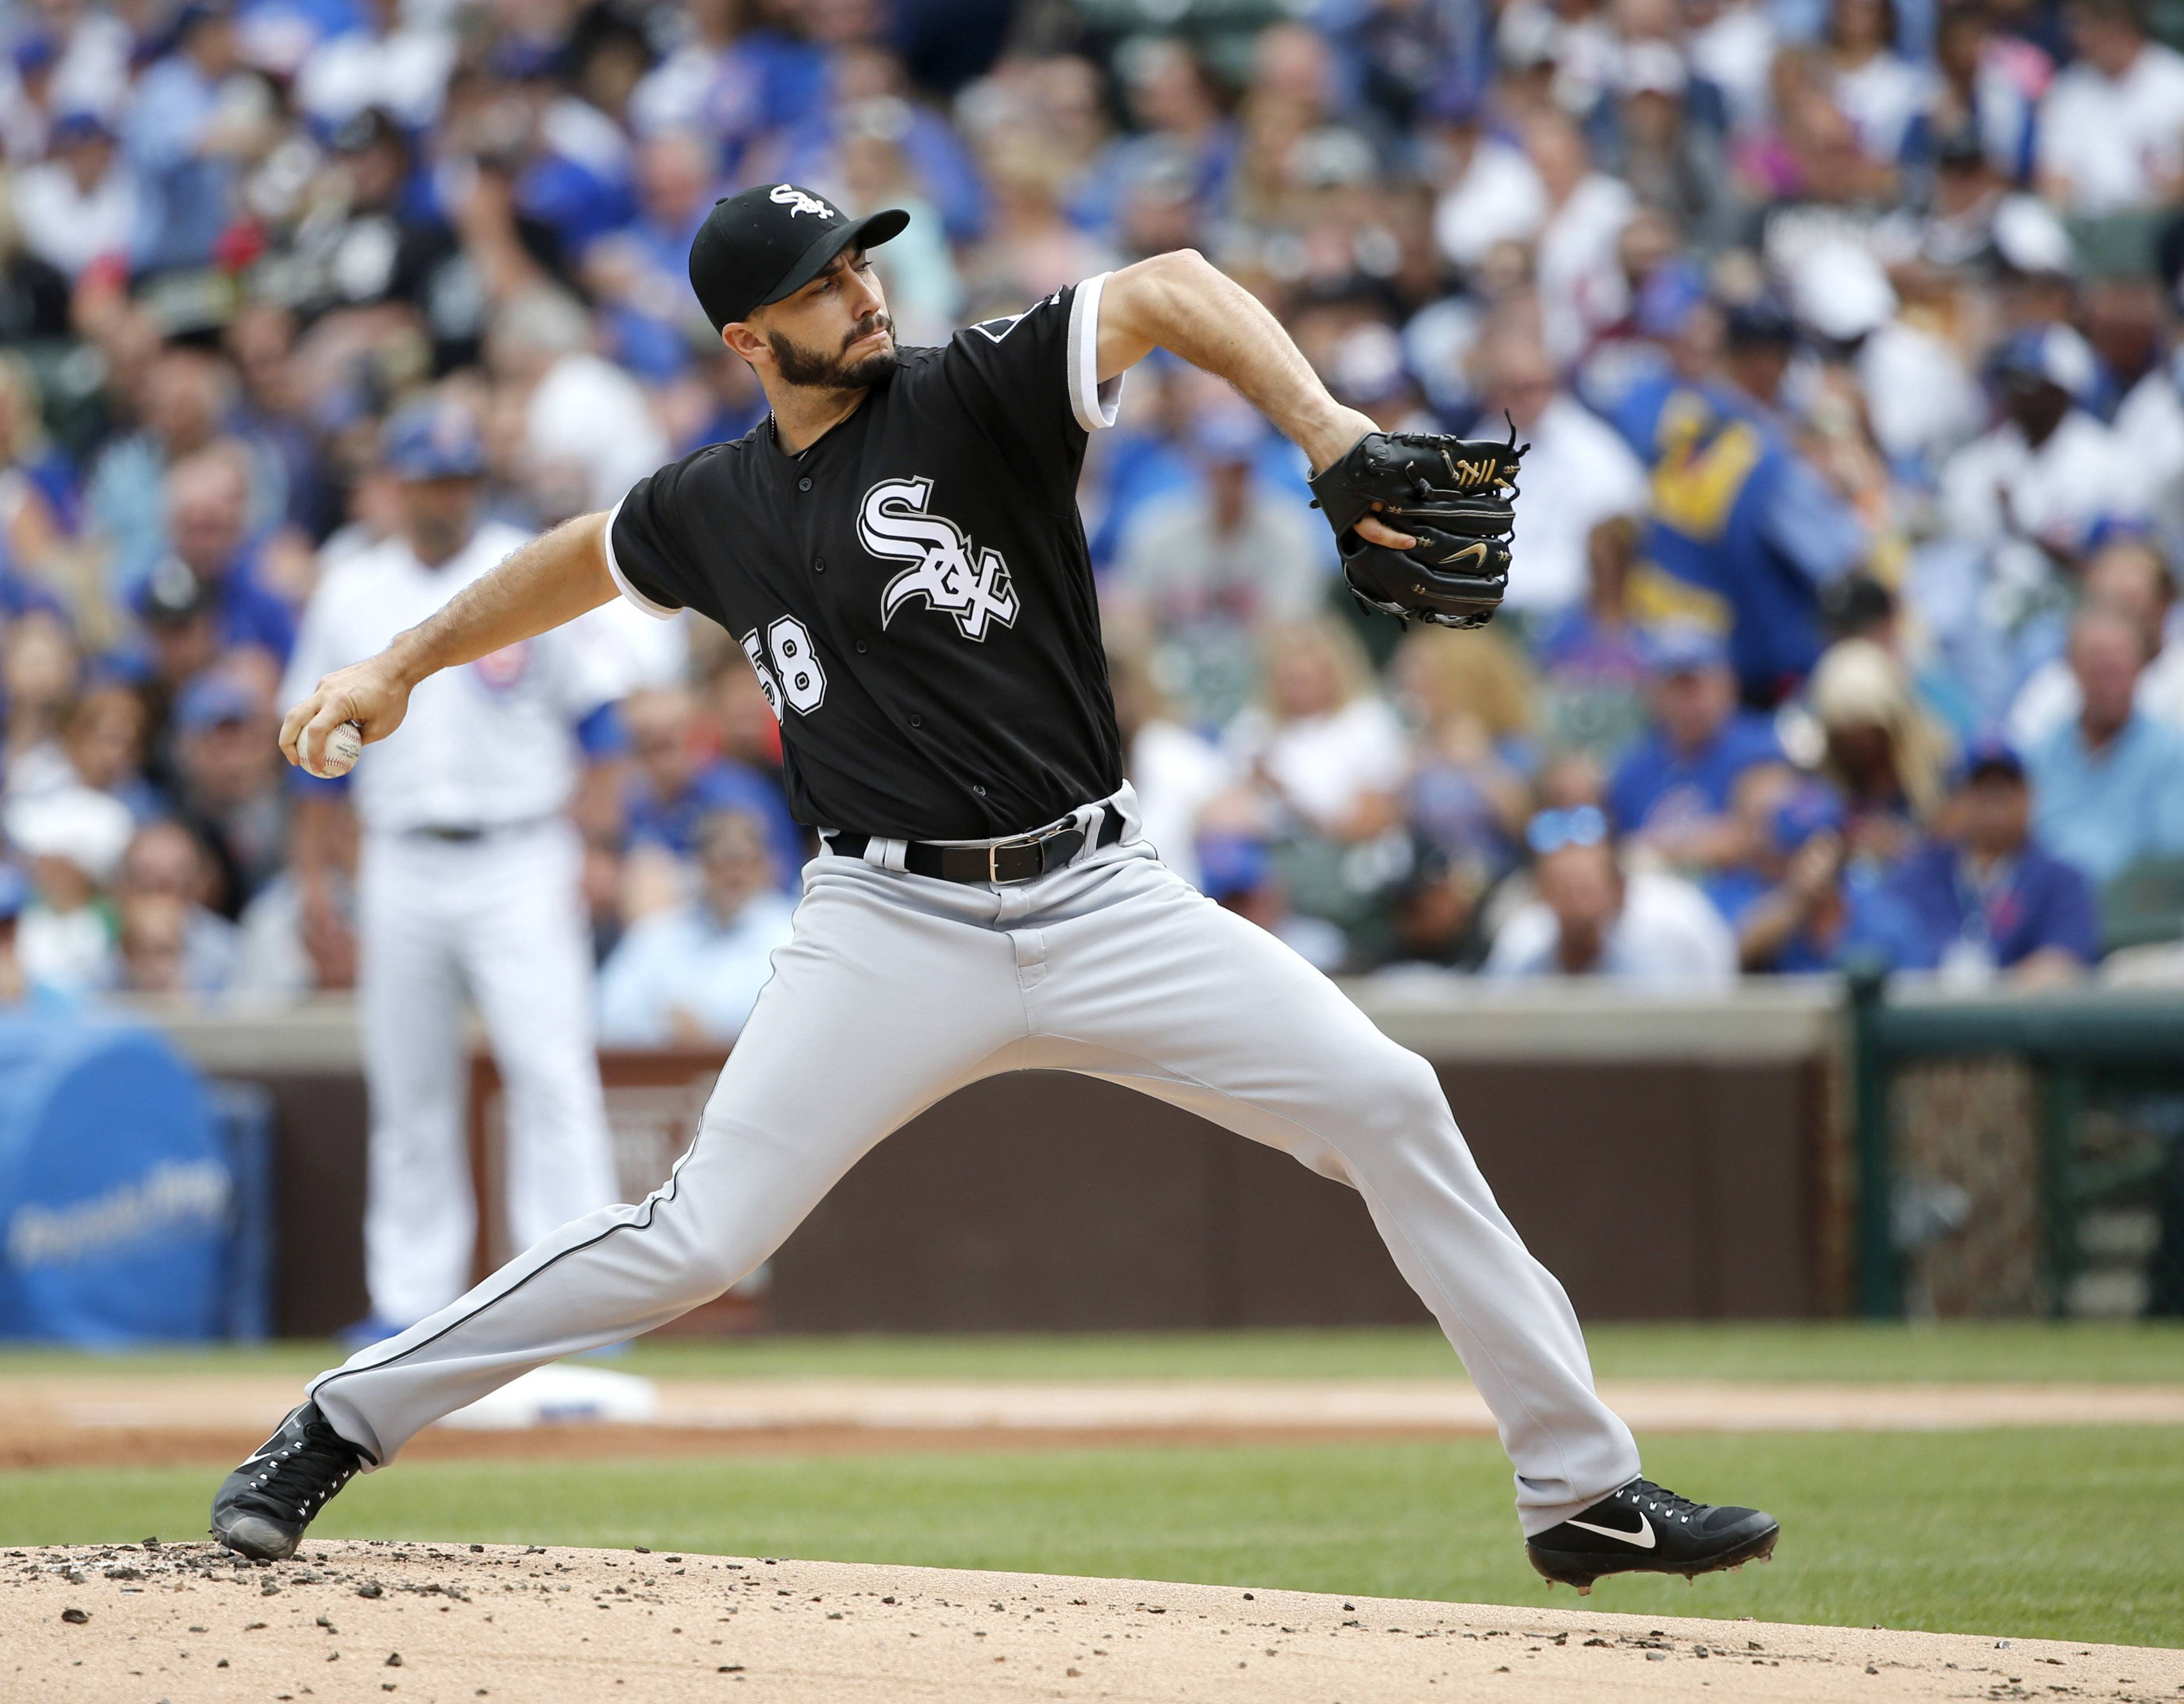 Chicago White Sox starting pitcher Miguel Gonzalez delivers during the first inning of a baseball game against the Chicago Cubs Monday, July 24, 2017, in Chicago.